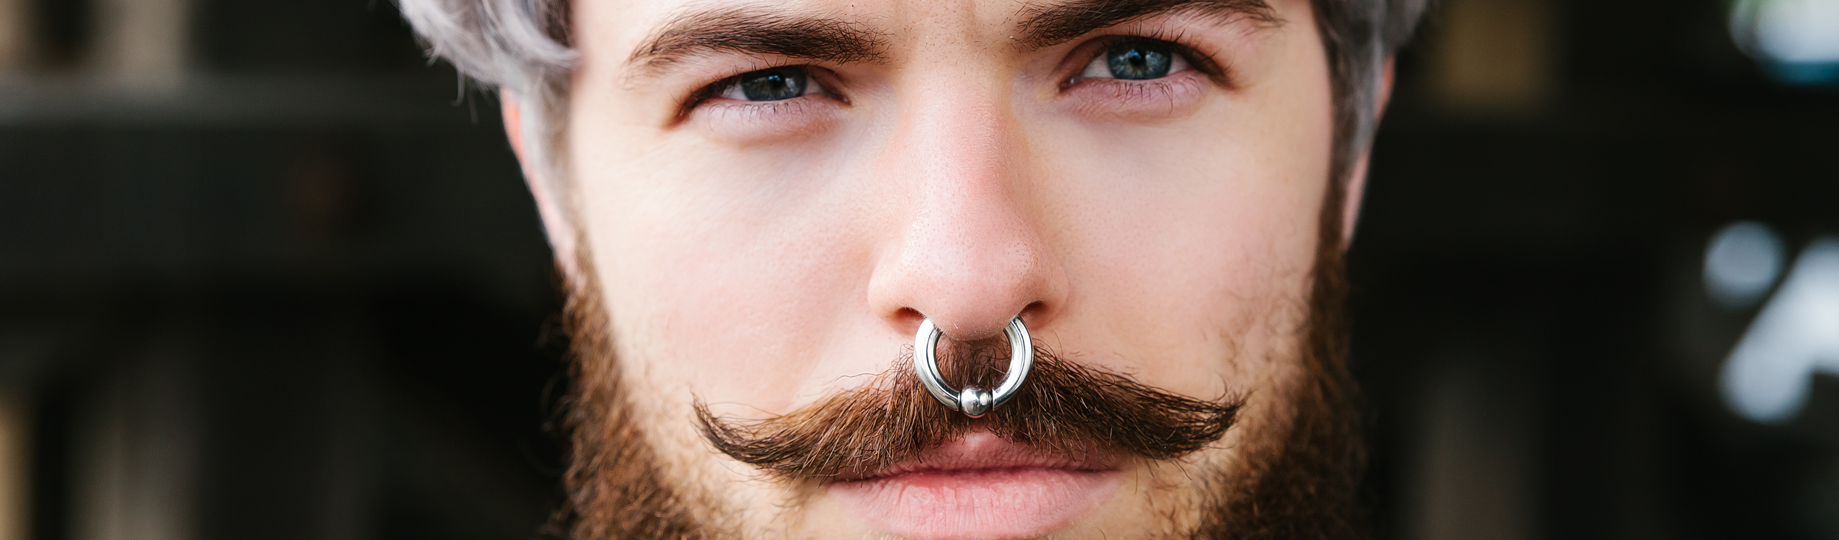 A Complete Guide To Septum Piercings